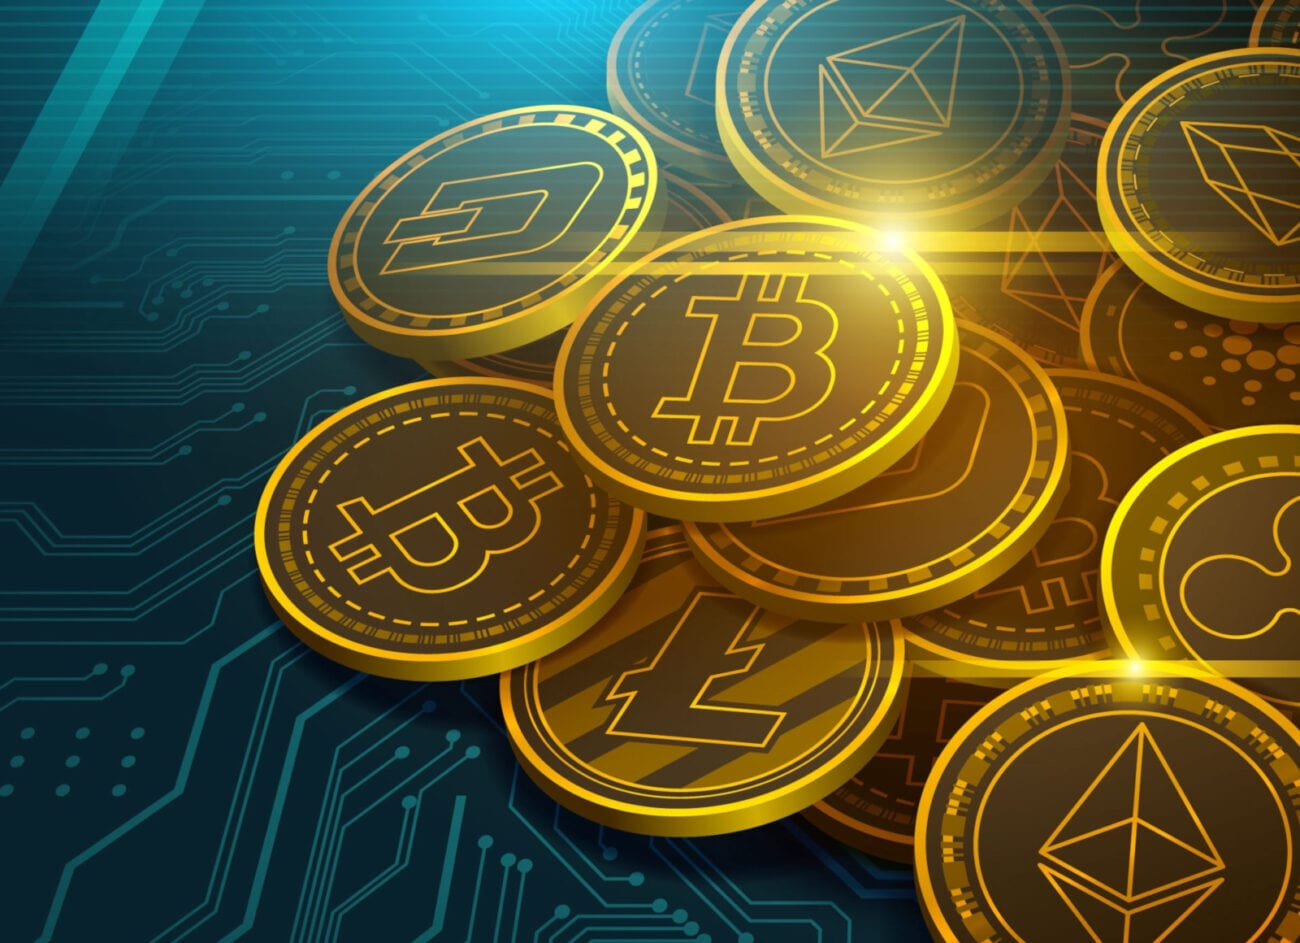 Cryptocurrencies may be the way of the future, but will they affect gambling? Check out how crypto is already making waves in the gambling sphere.